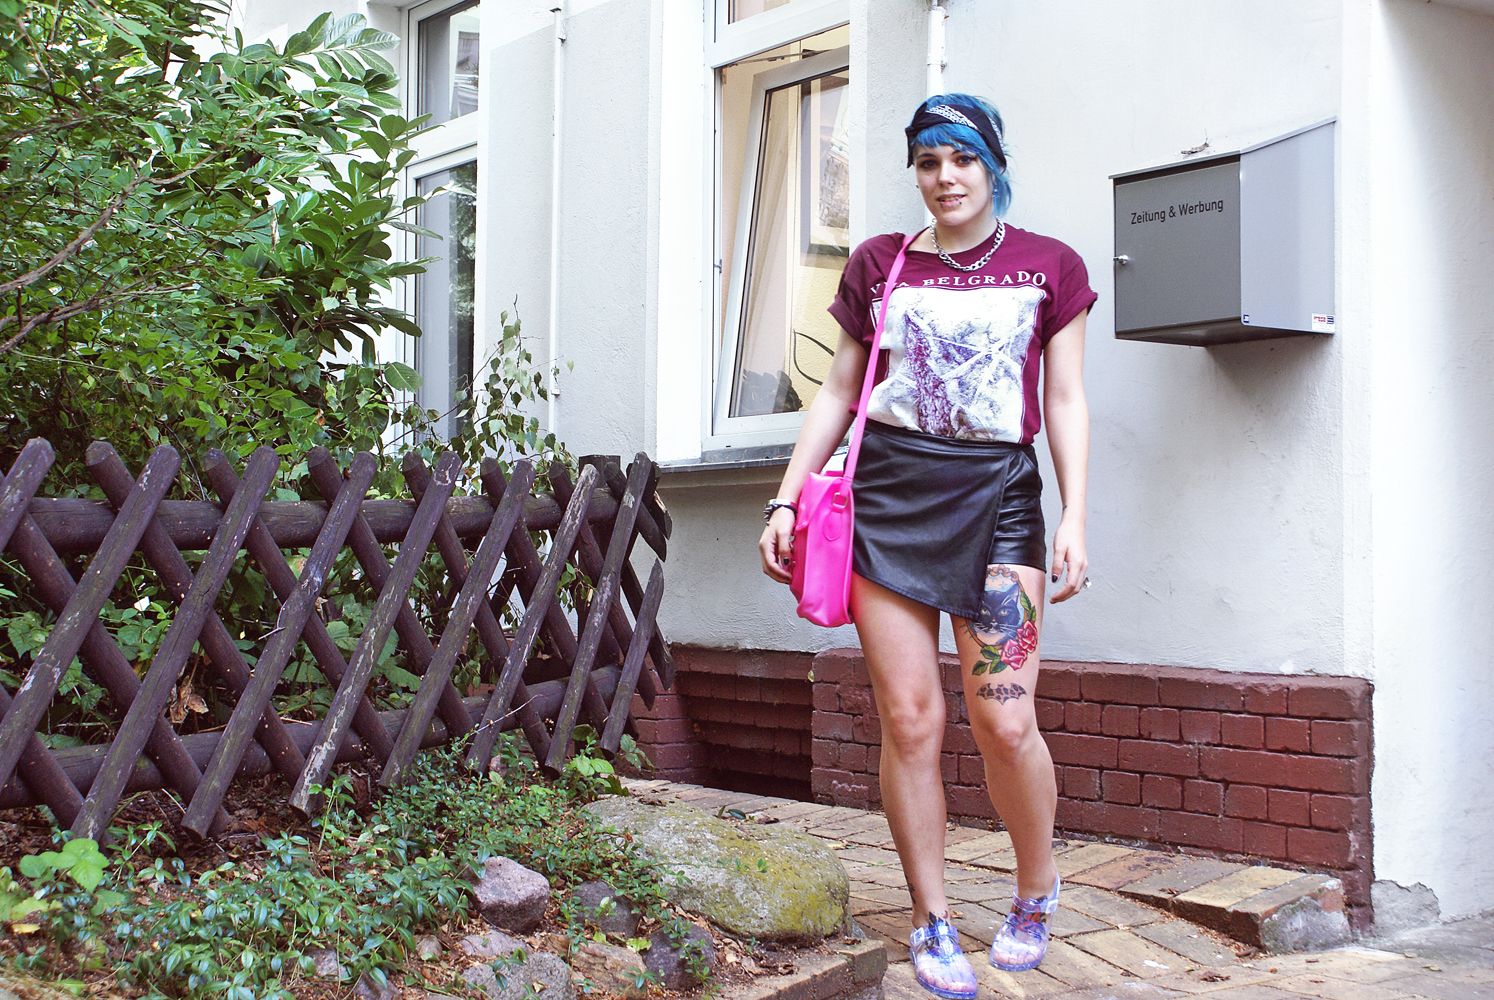 viva belgrado, bandshirt, merch, boohoo, satchel, pink, tattoos, skort, shorts, ledershorts, kunstleder, vegan leather, jelly shoues